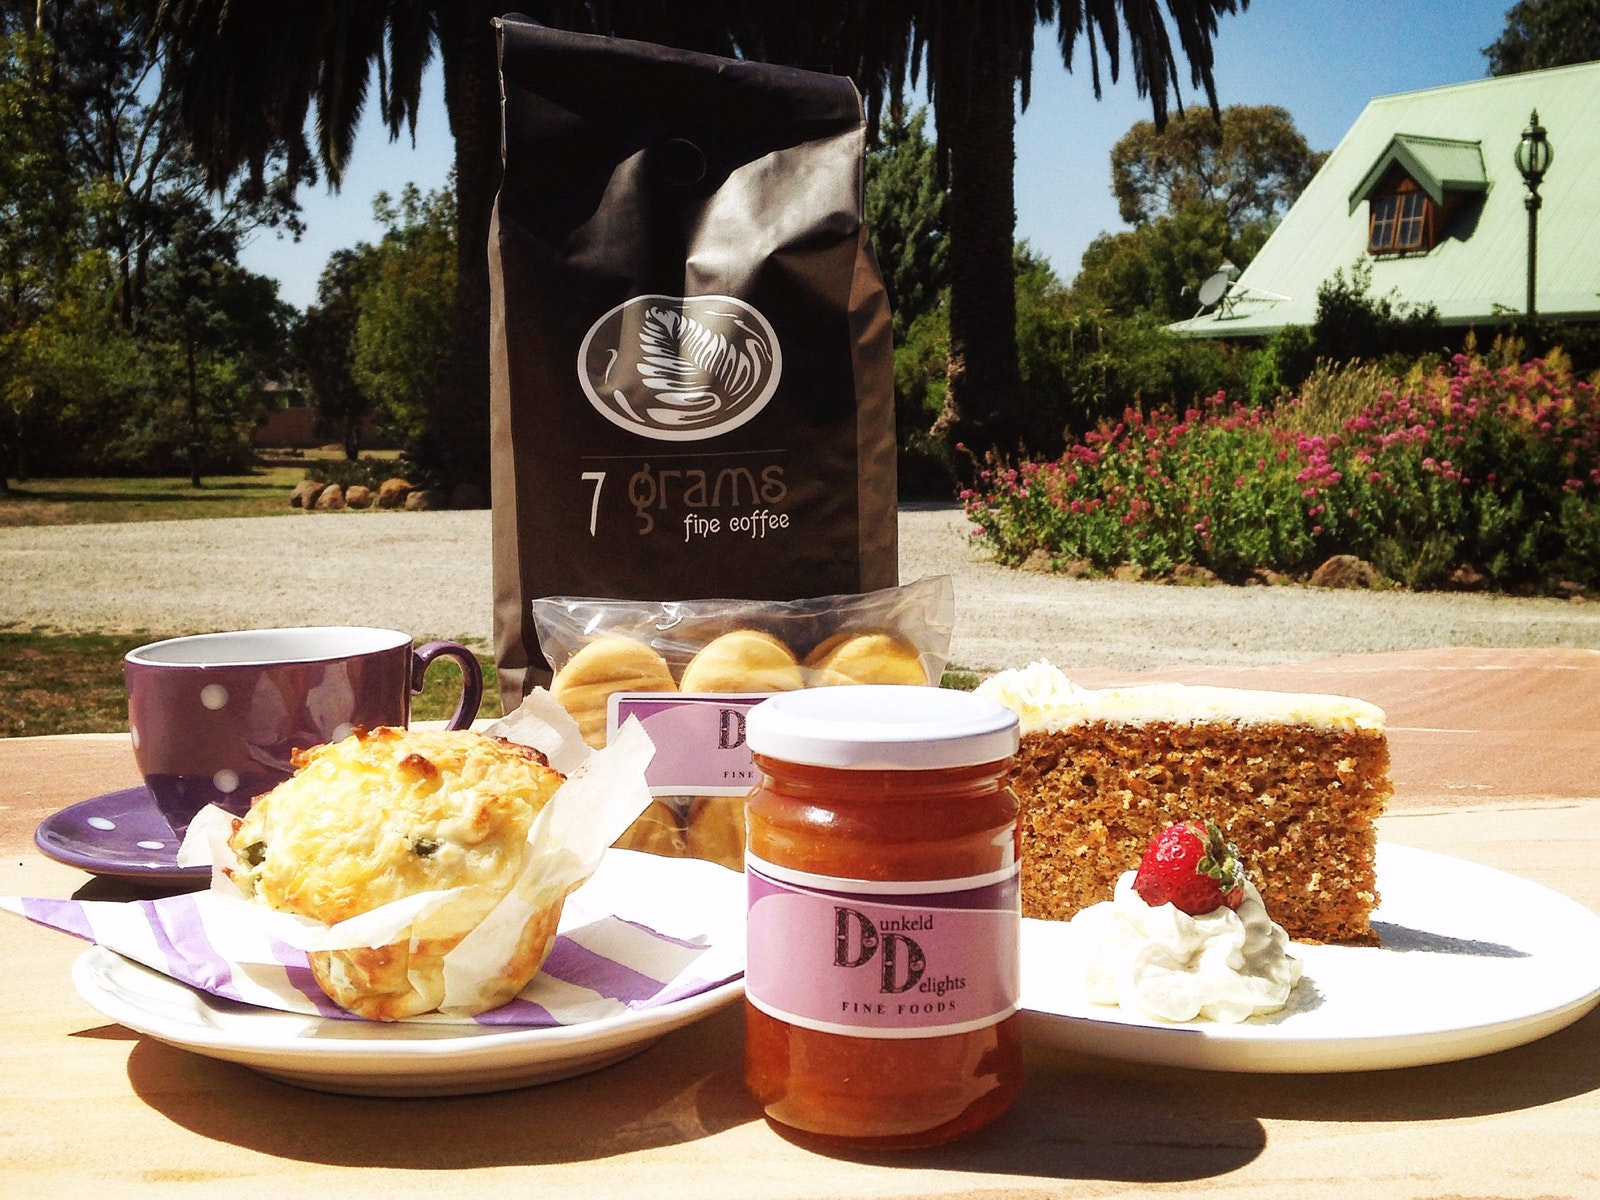 Dunkeld Delights produce and products